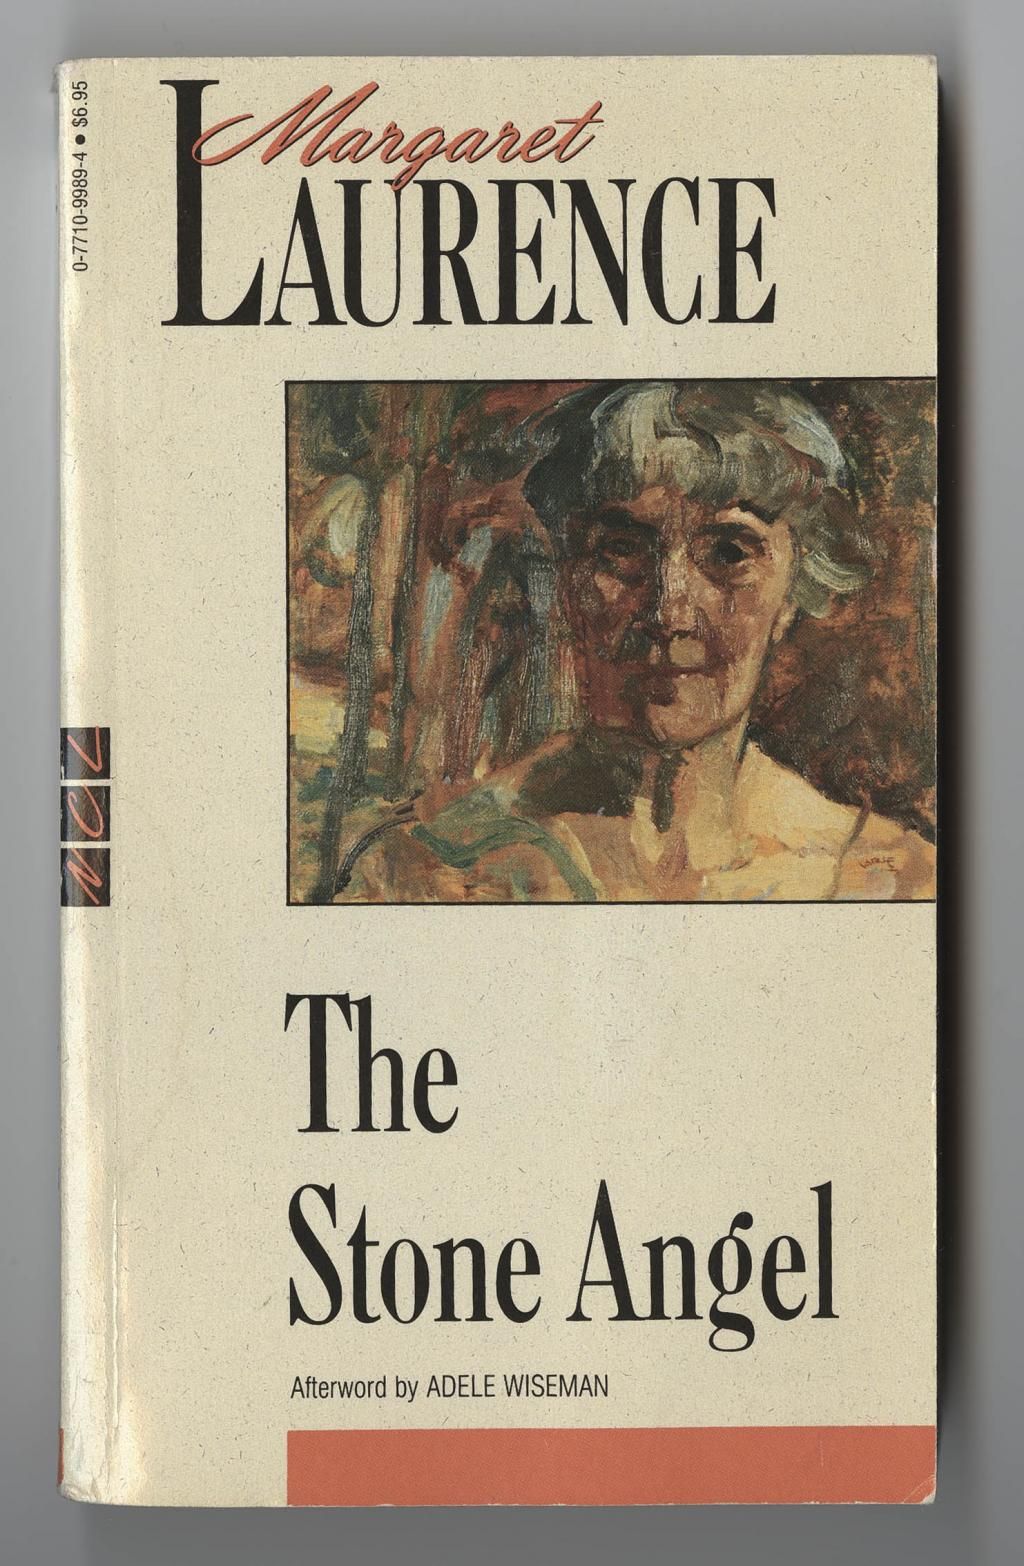 The stone angel by margaret laurences essay